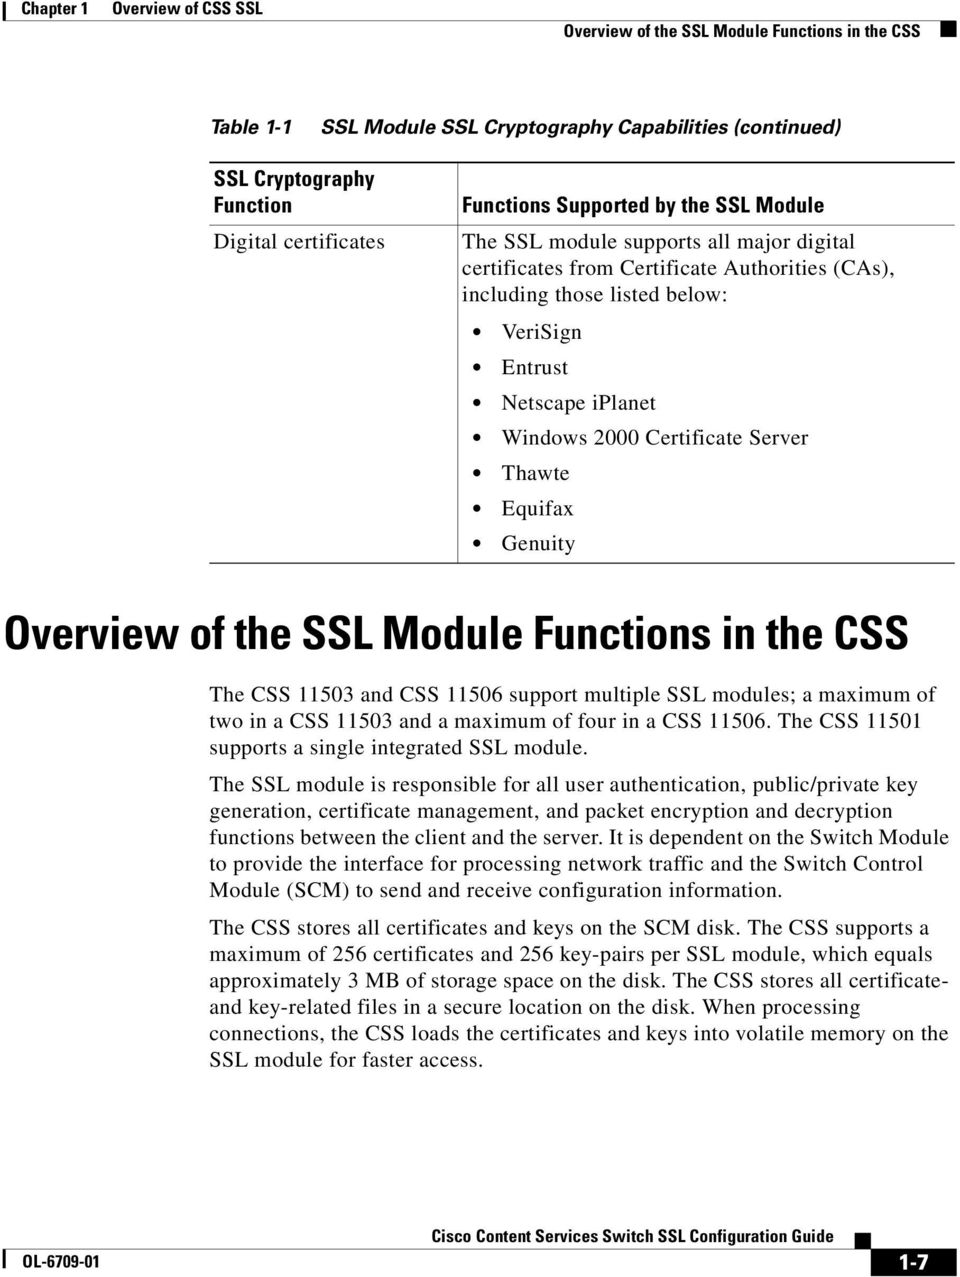 Thawte Equifax Genuity Overview of the SSL Module Functions in the CSS The CSS 11503 and CSS 11506 support multiple SSL modules; a maximum of two in a CSS 11503 and a maximum of four in a CSS 11506.